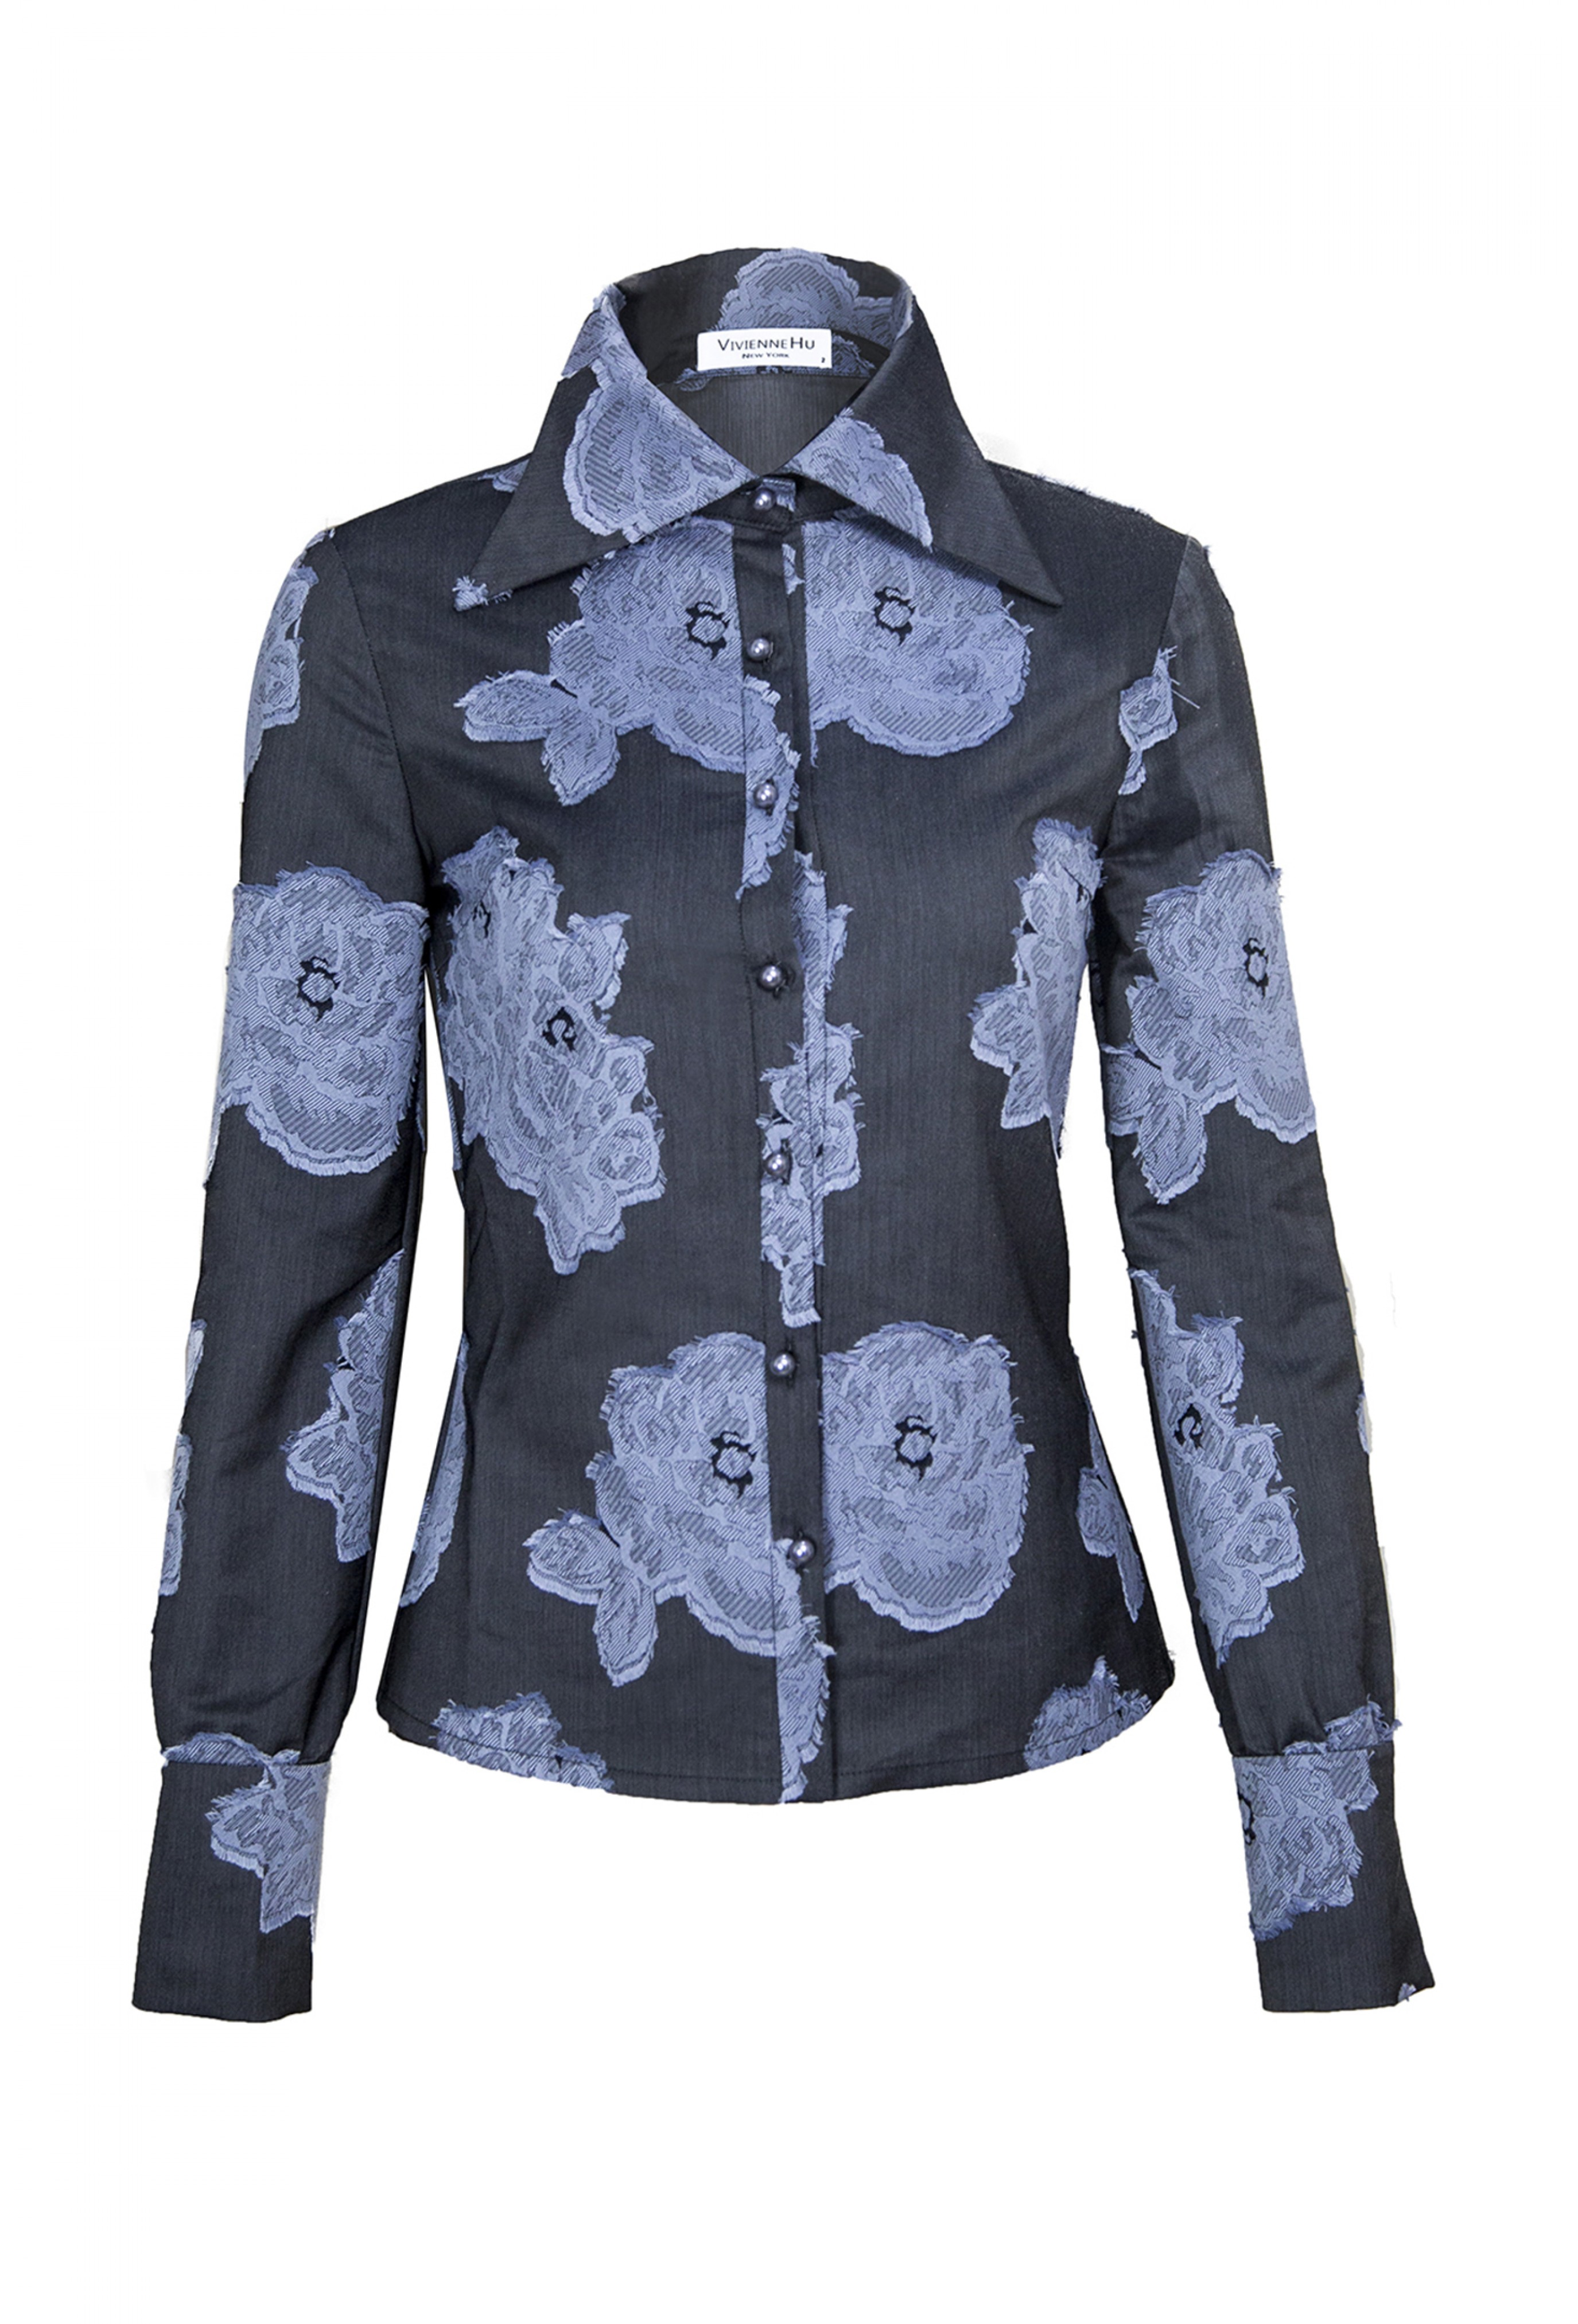 DARK BLUE FLOWER SHIRT